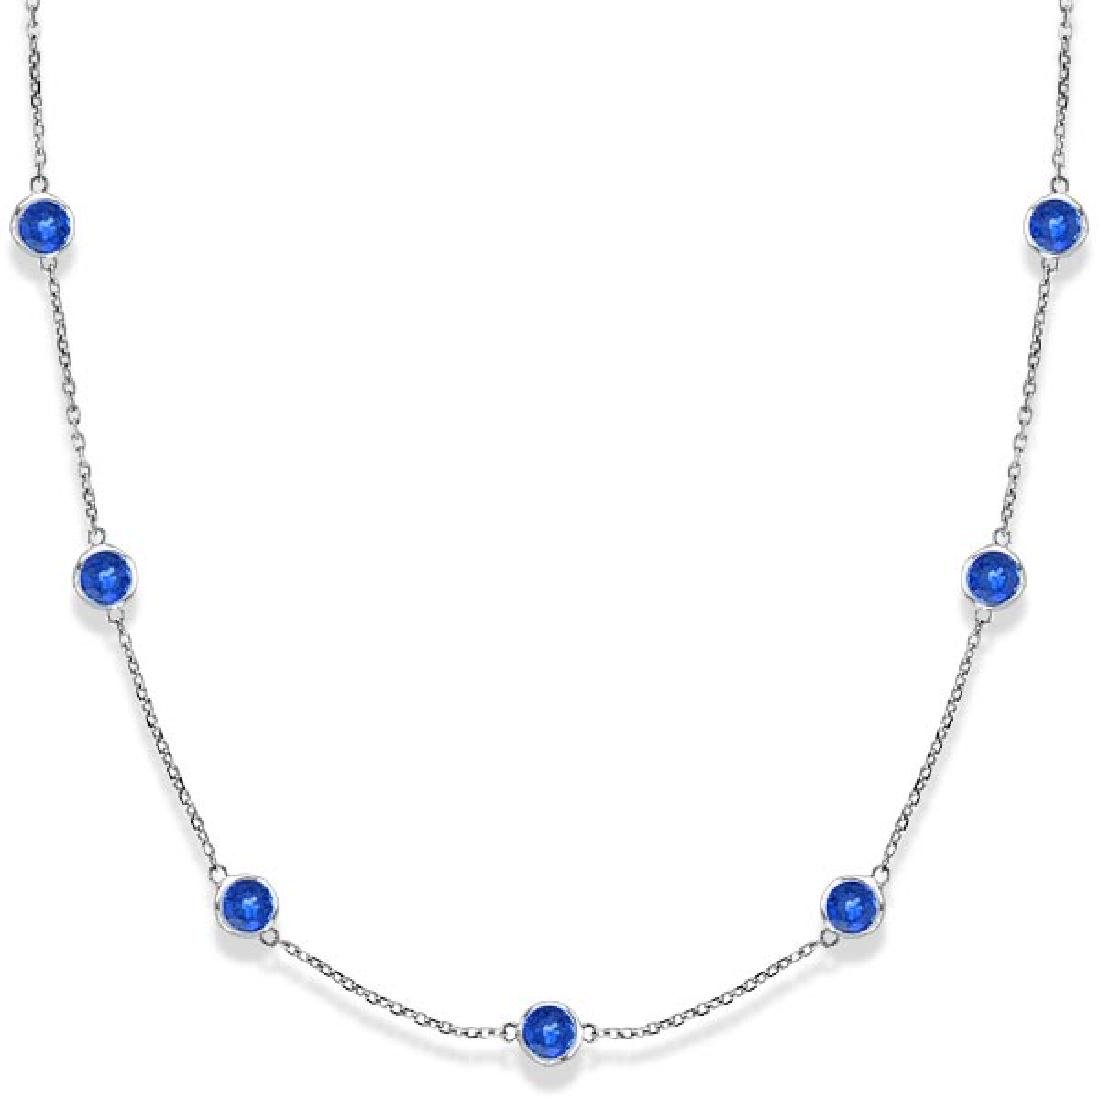 Blue Sapphires Gemstones by The Yard Necklace 14k White